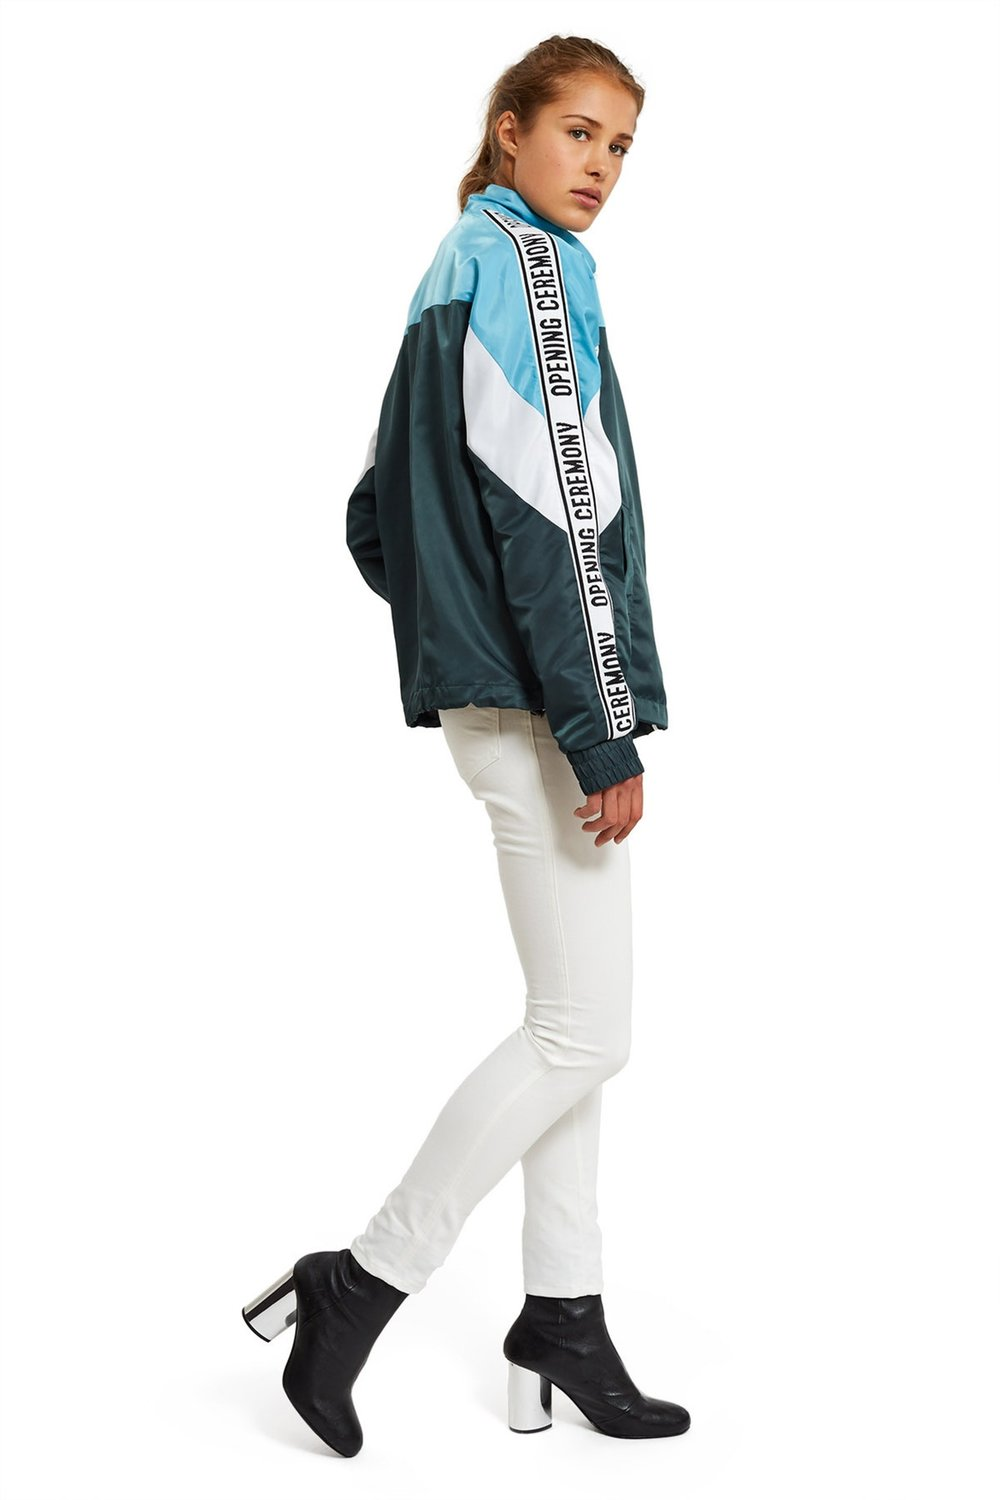 CNK-Opening-Ceremony-Track-Jacket-4.jpg